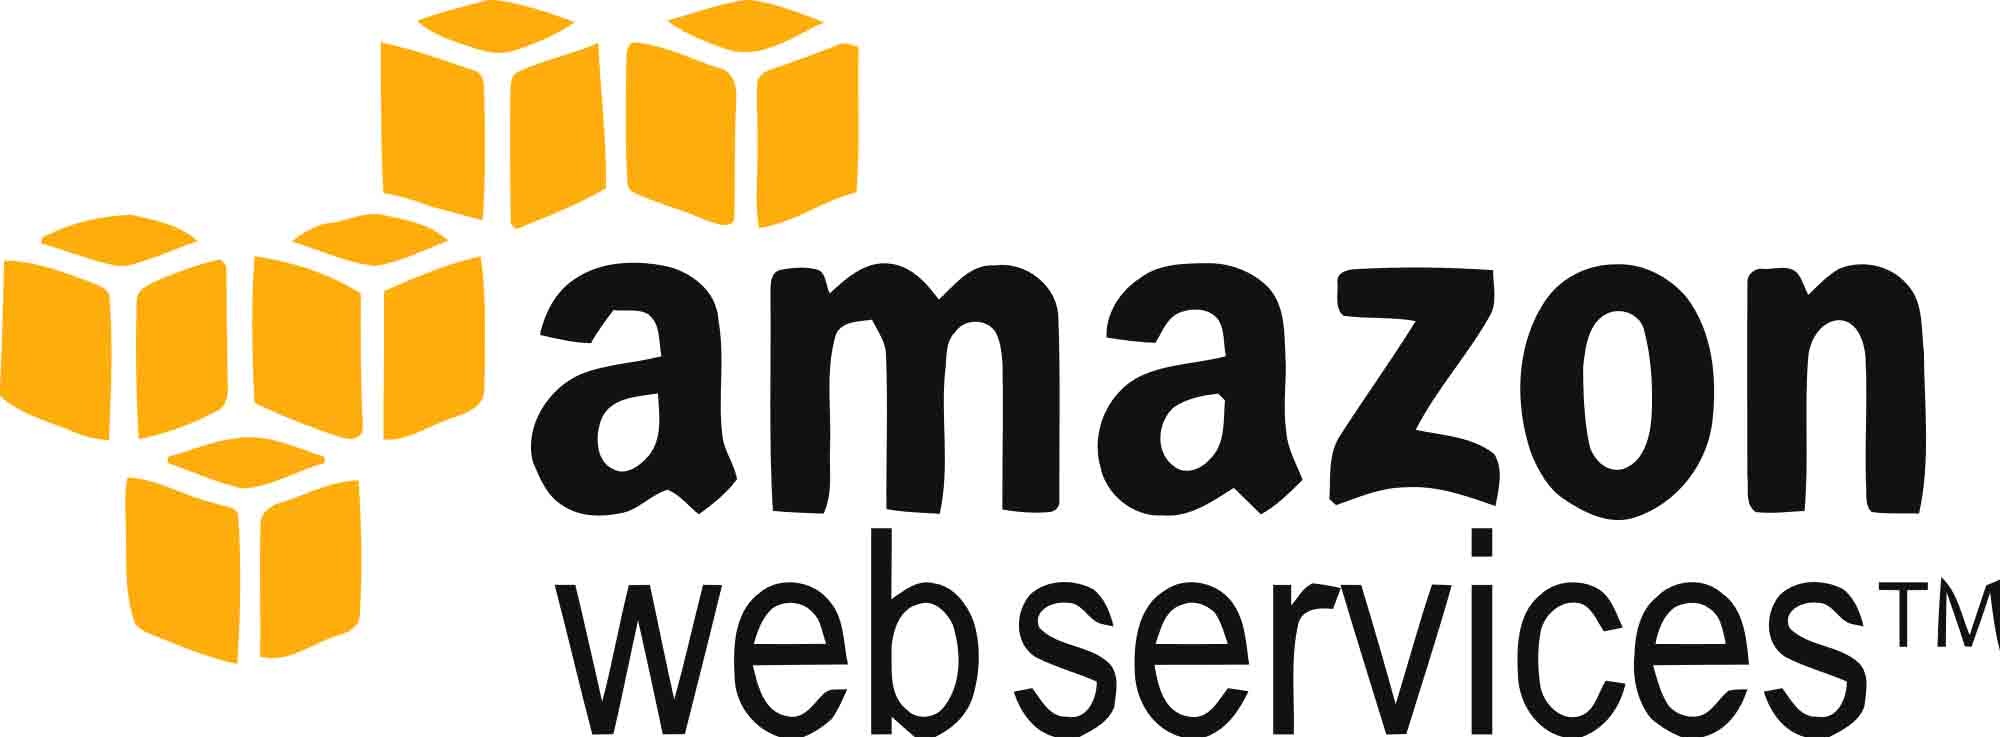 Aws Just Made It A Whole Lot Easier For Anyone To Create A Virtual